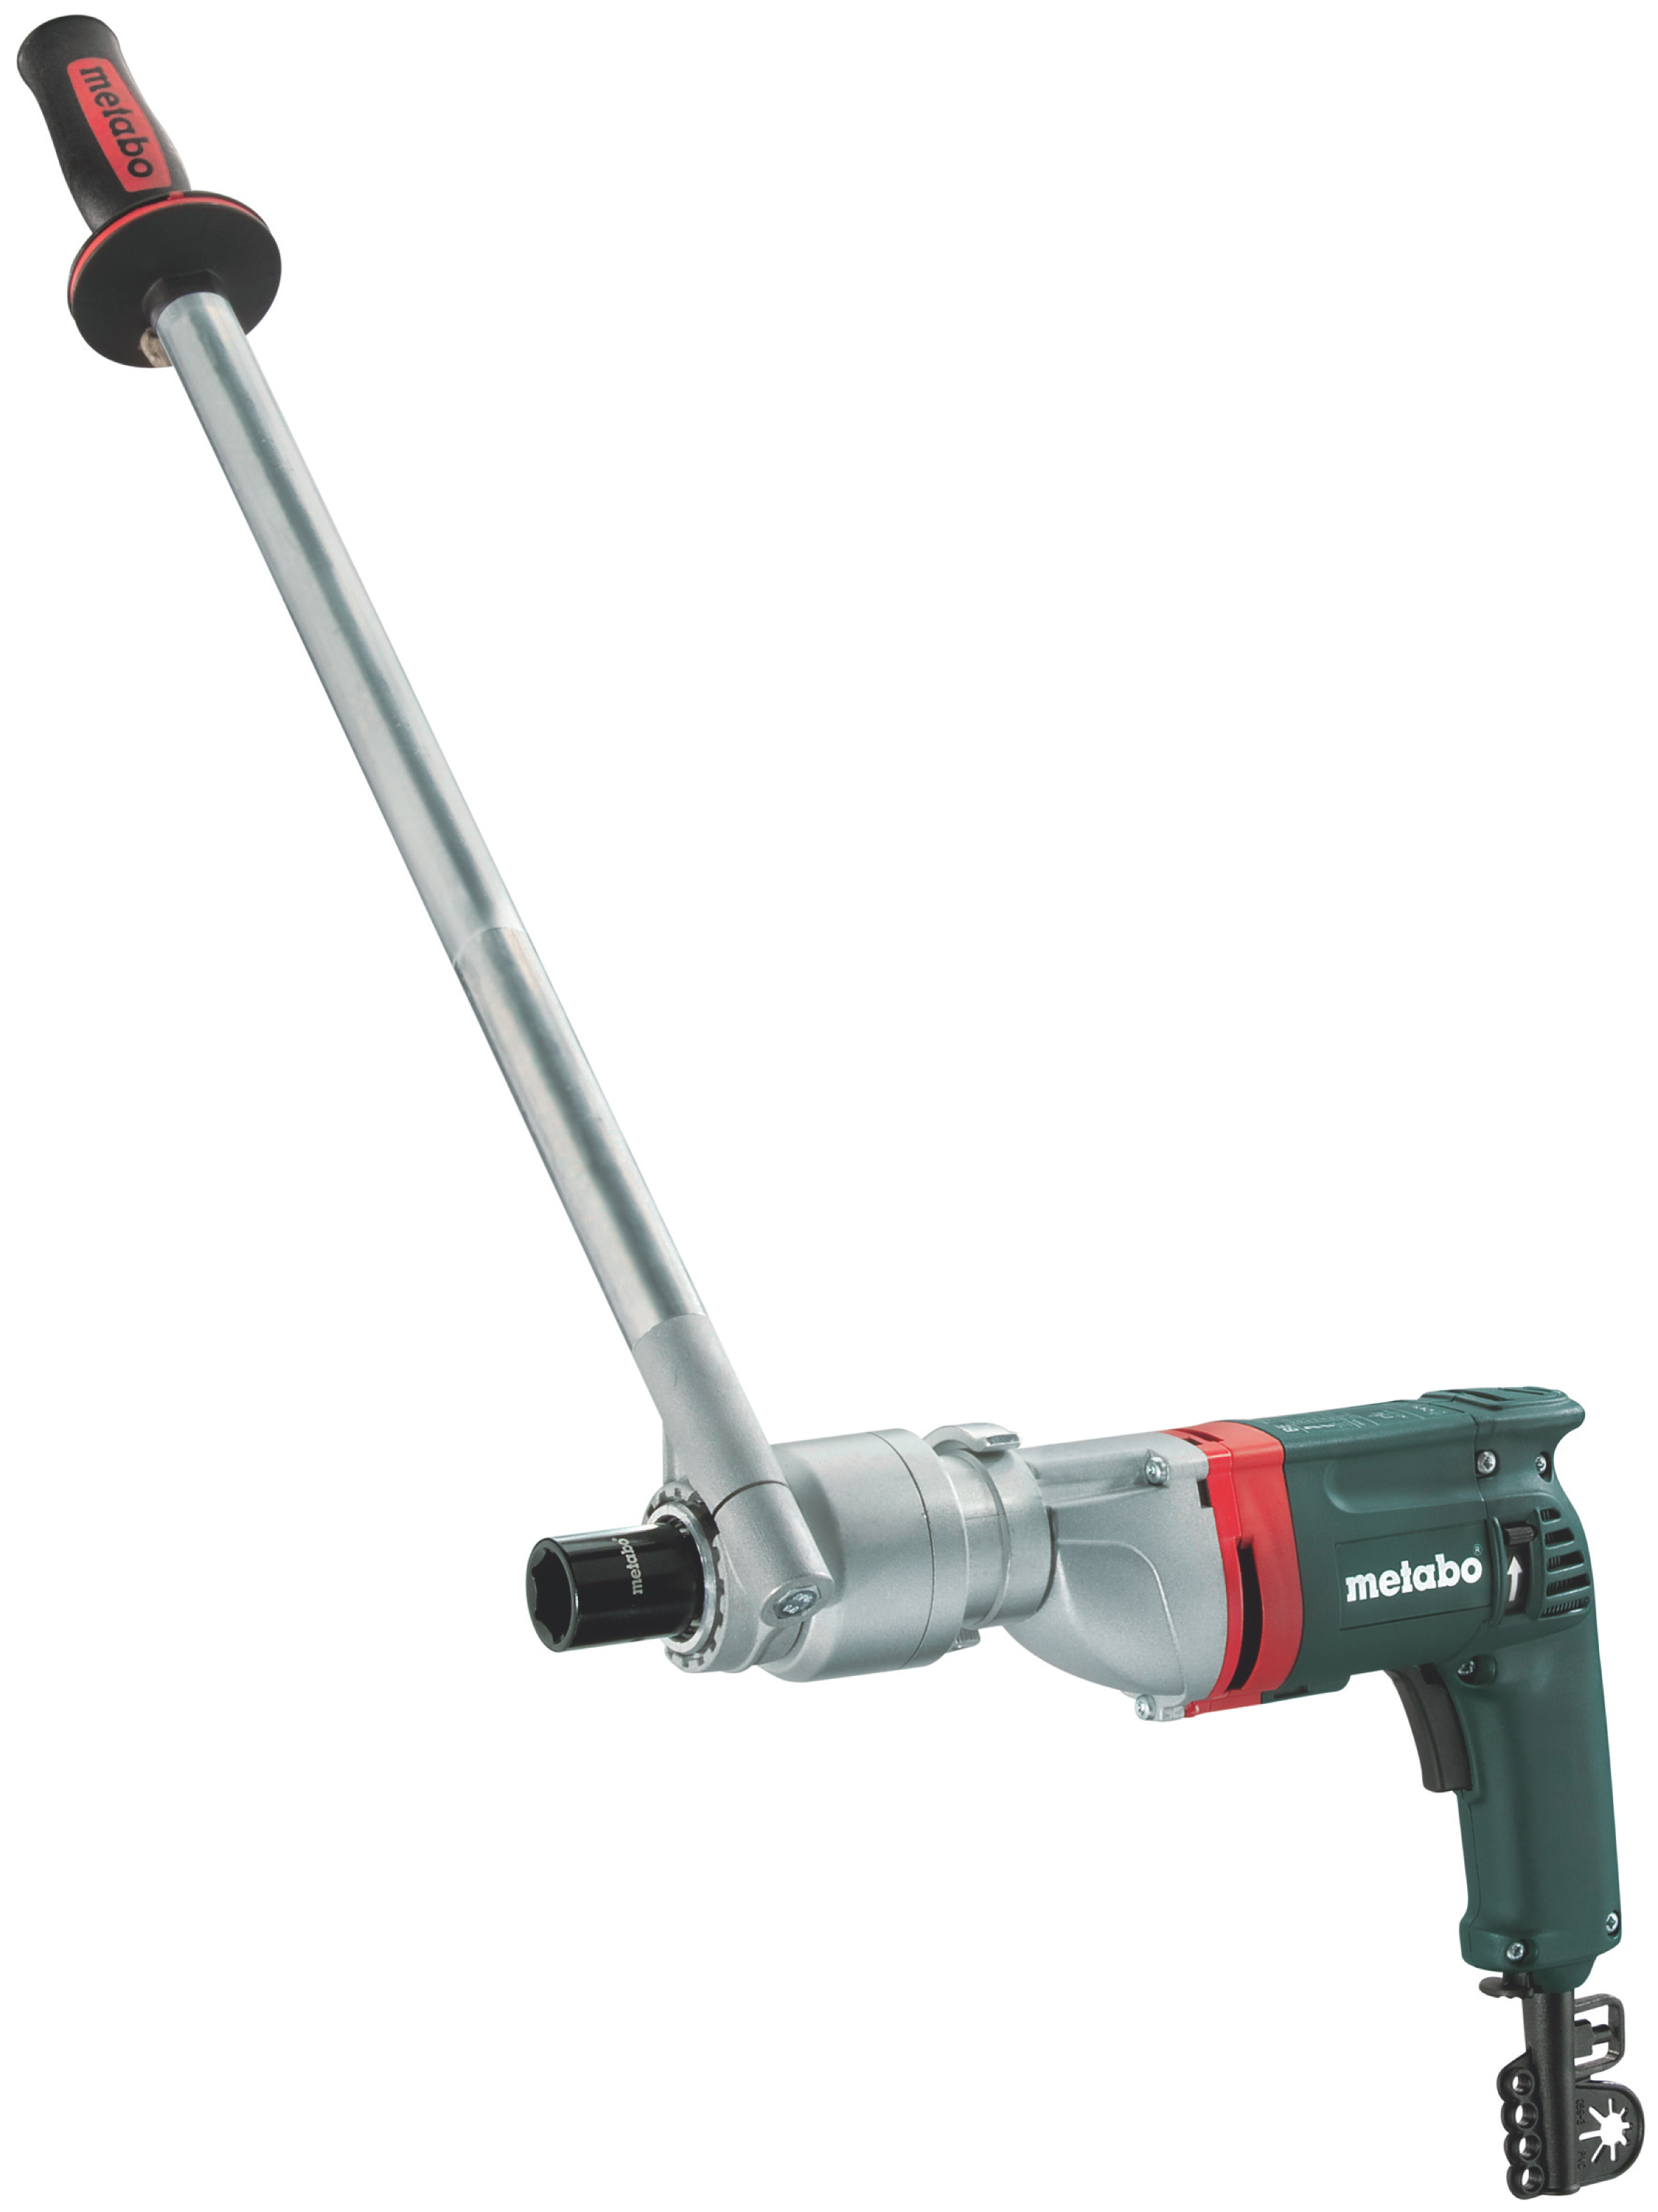 Дрель-миксер Metabo Be 75-x3 quick (600585800)